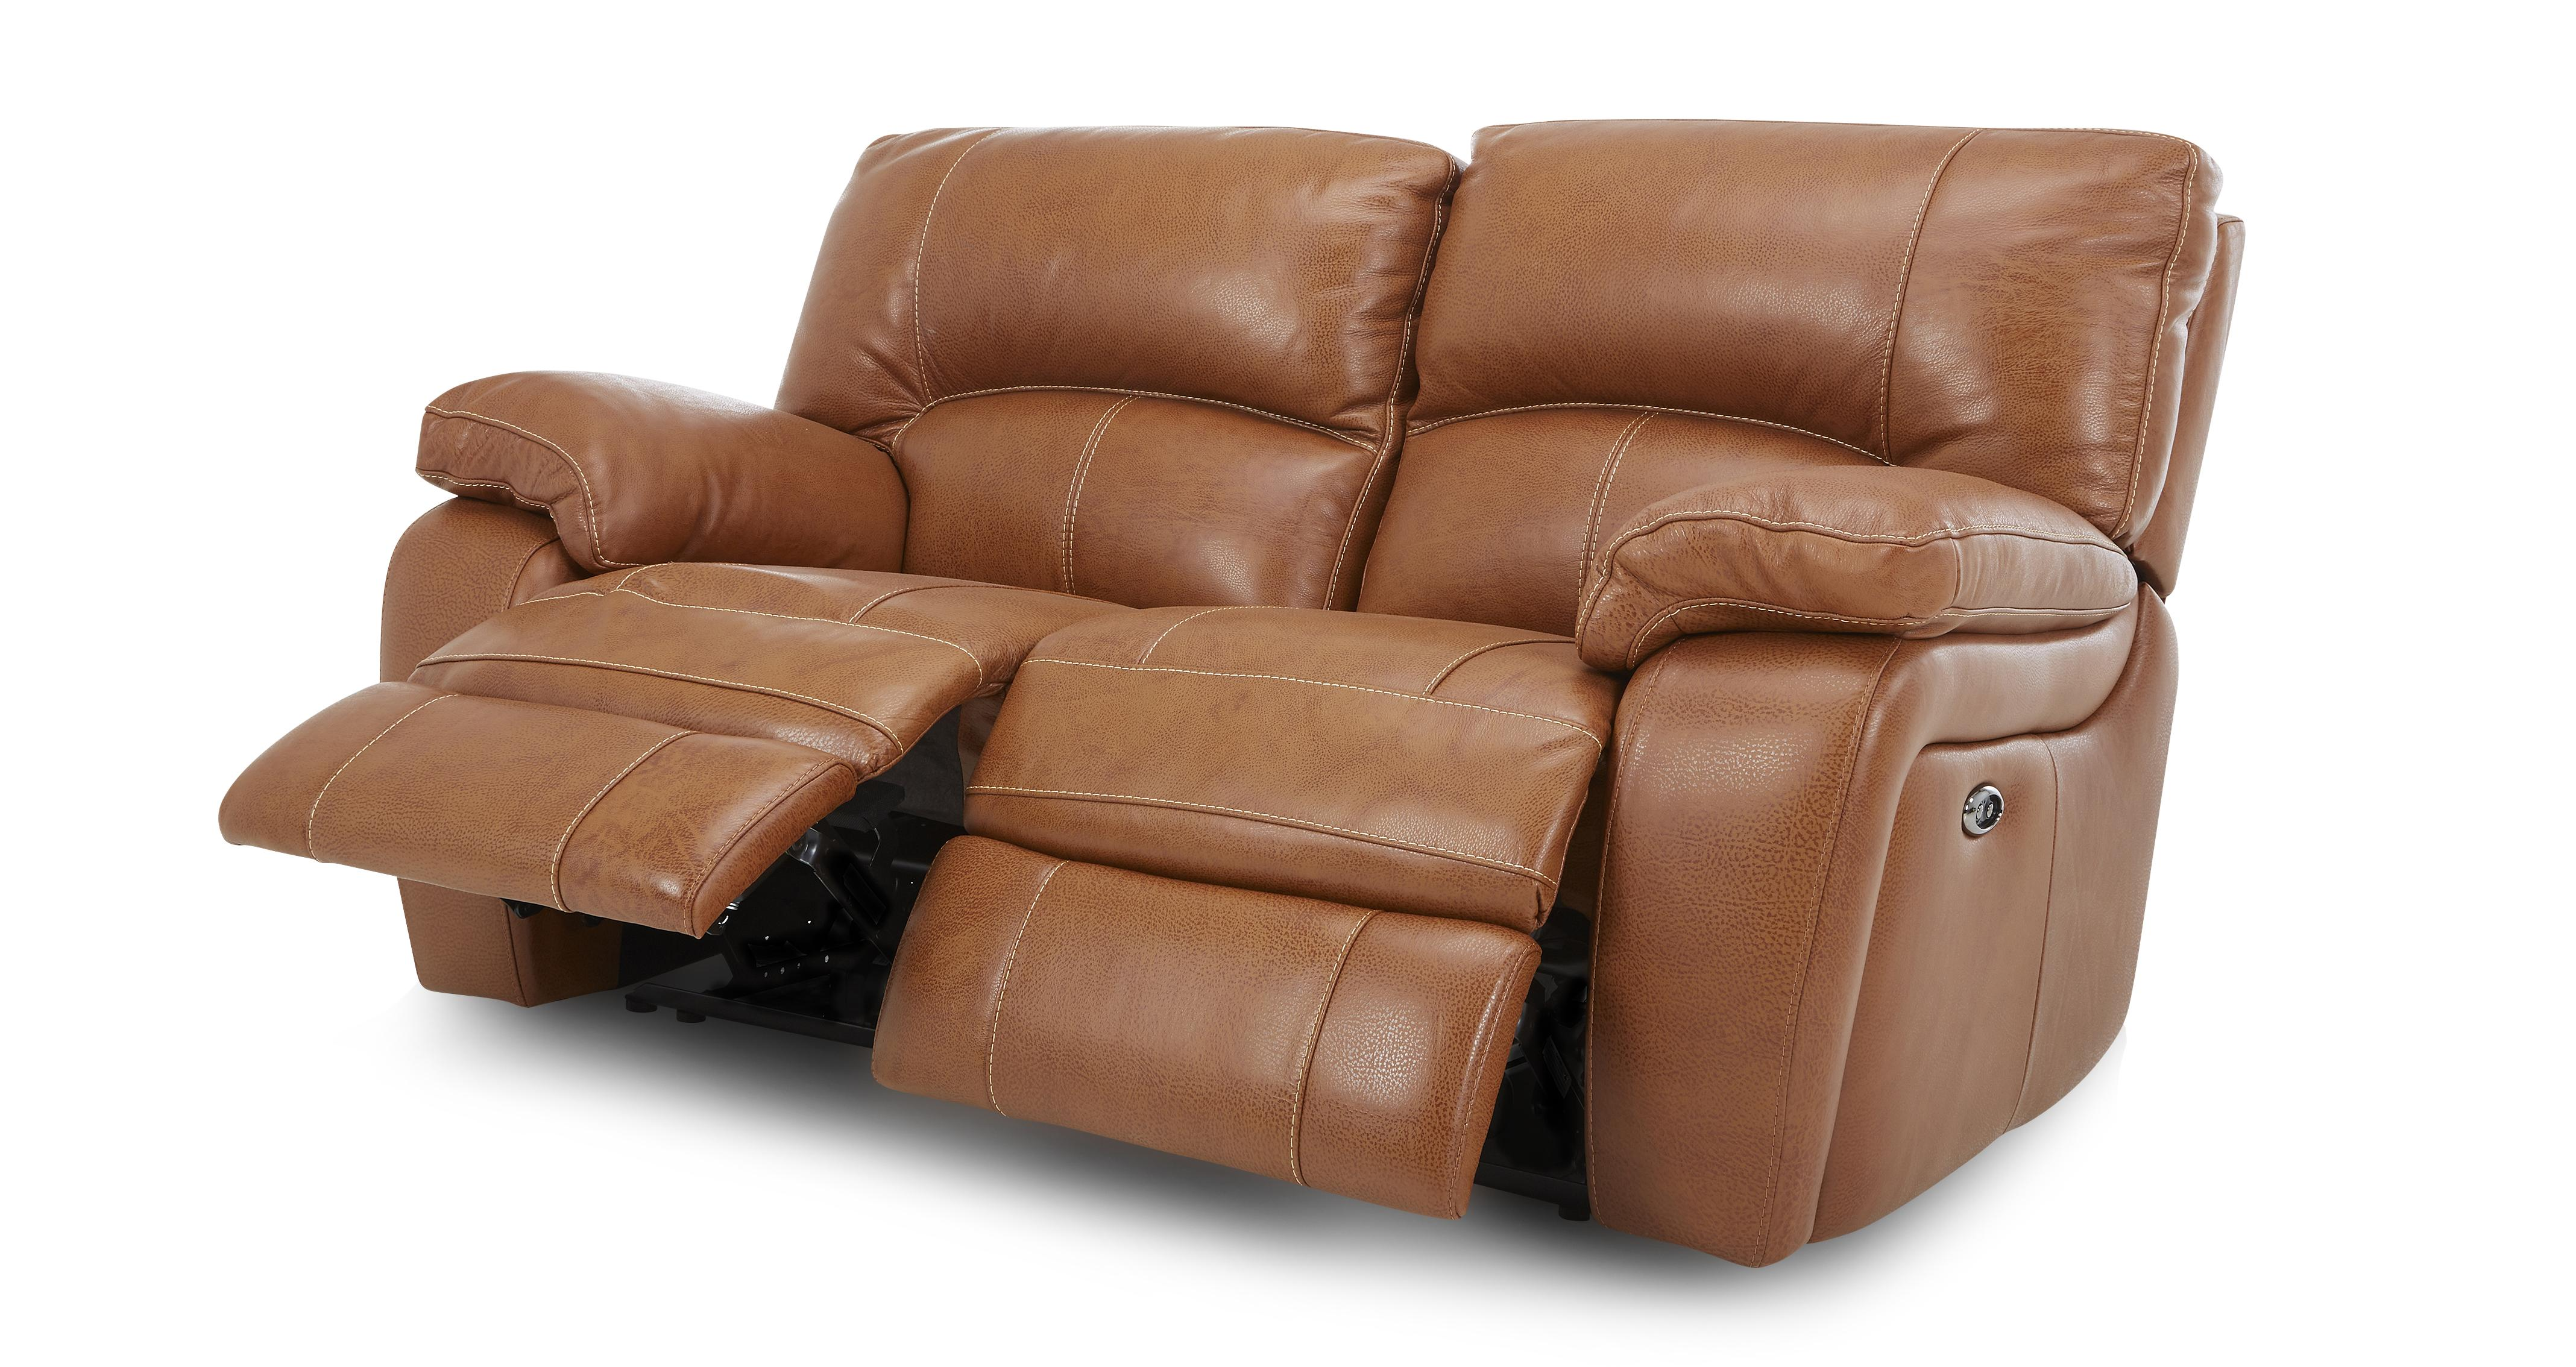 leather sofas dfs firm sofa cushion foam brown recliner brokeasshome